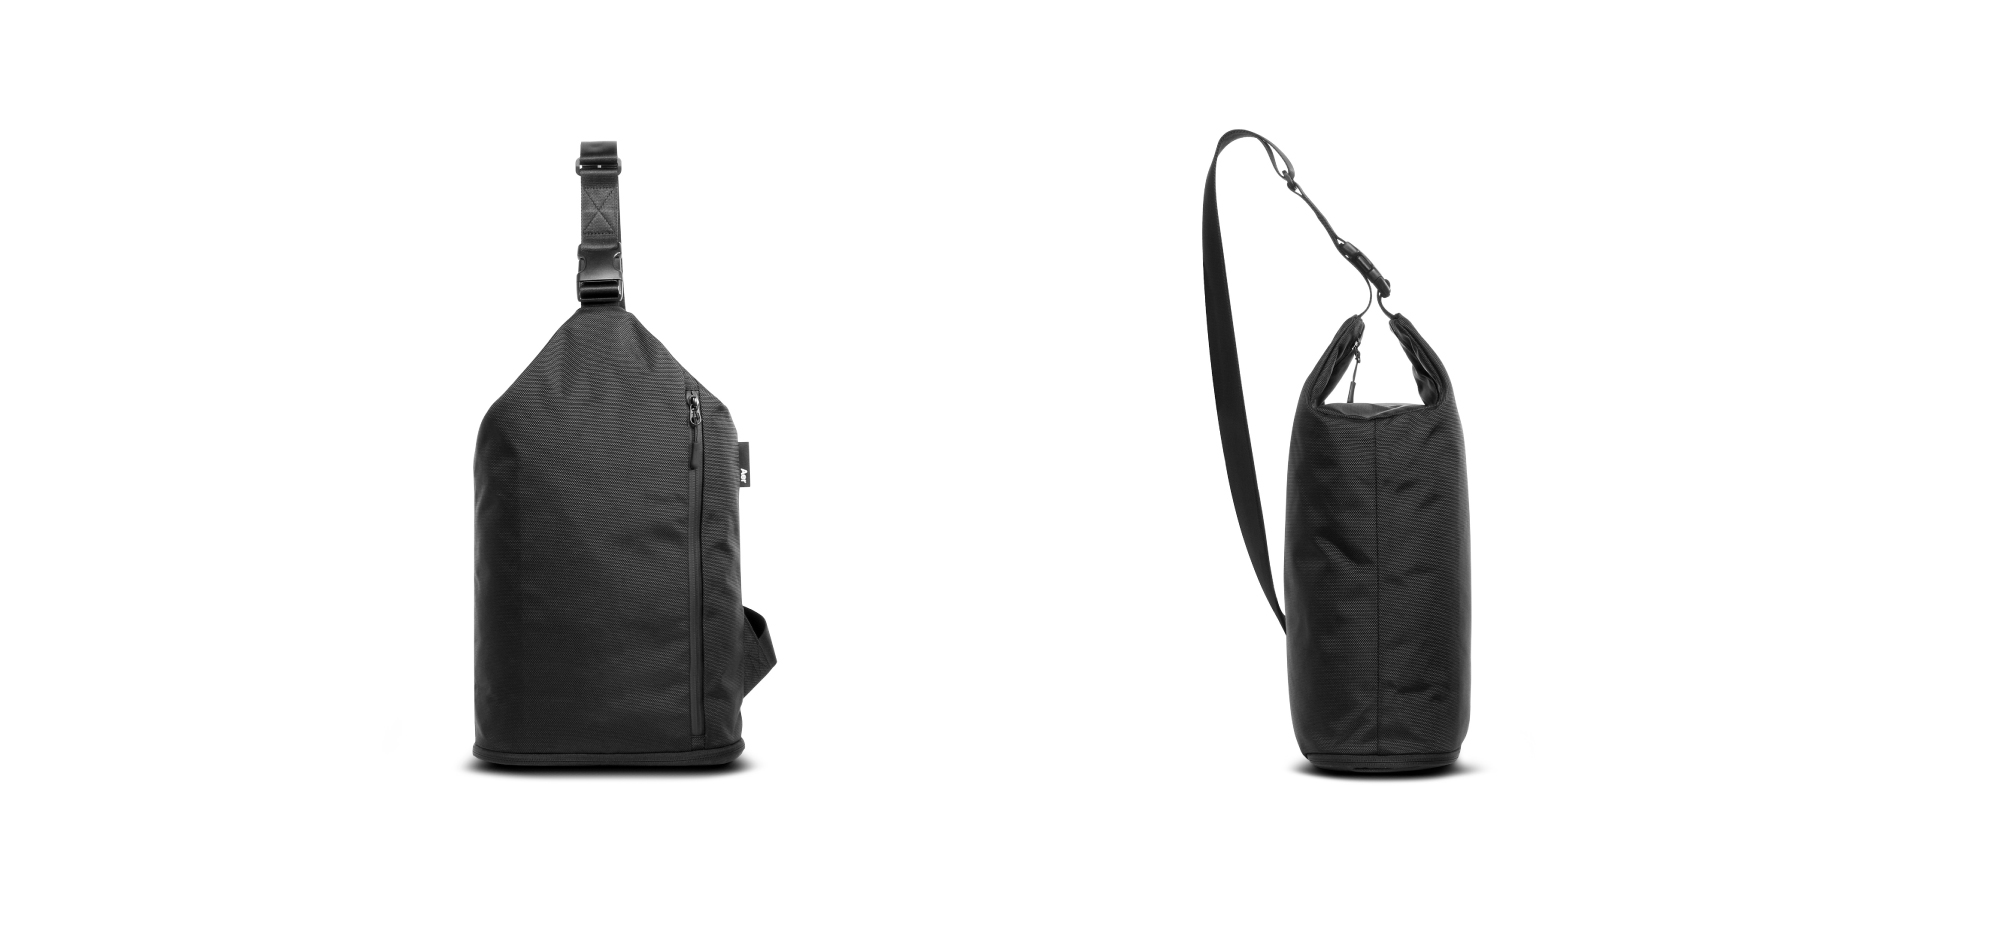 Aer Sling Bag Gym Bag